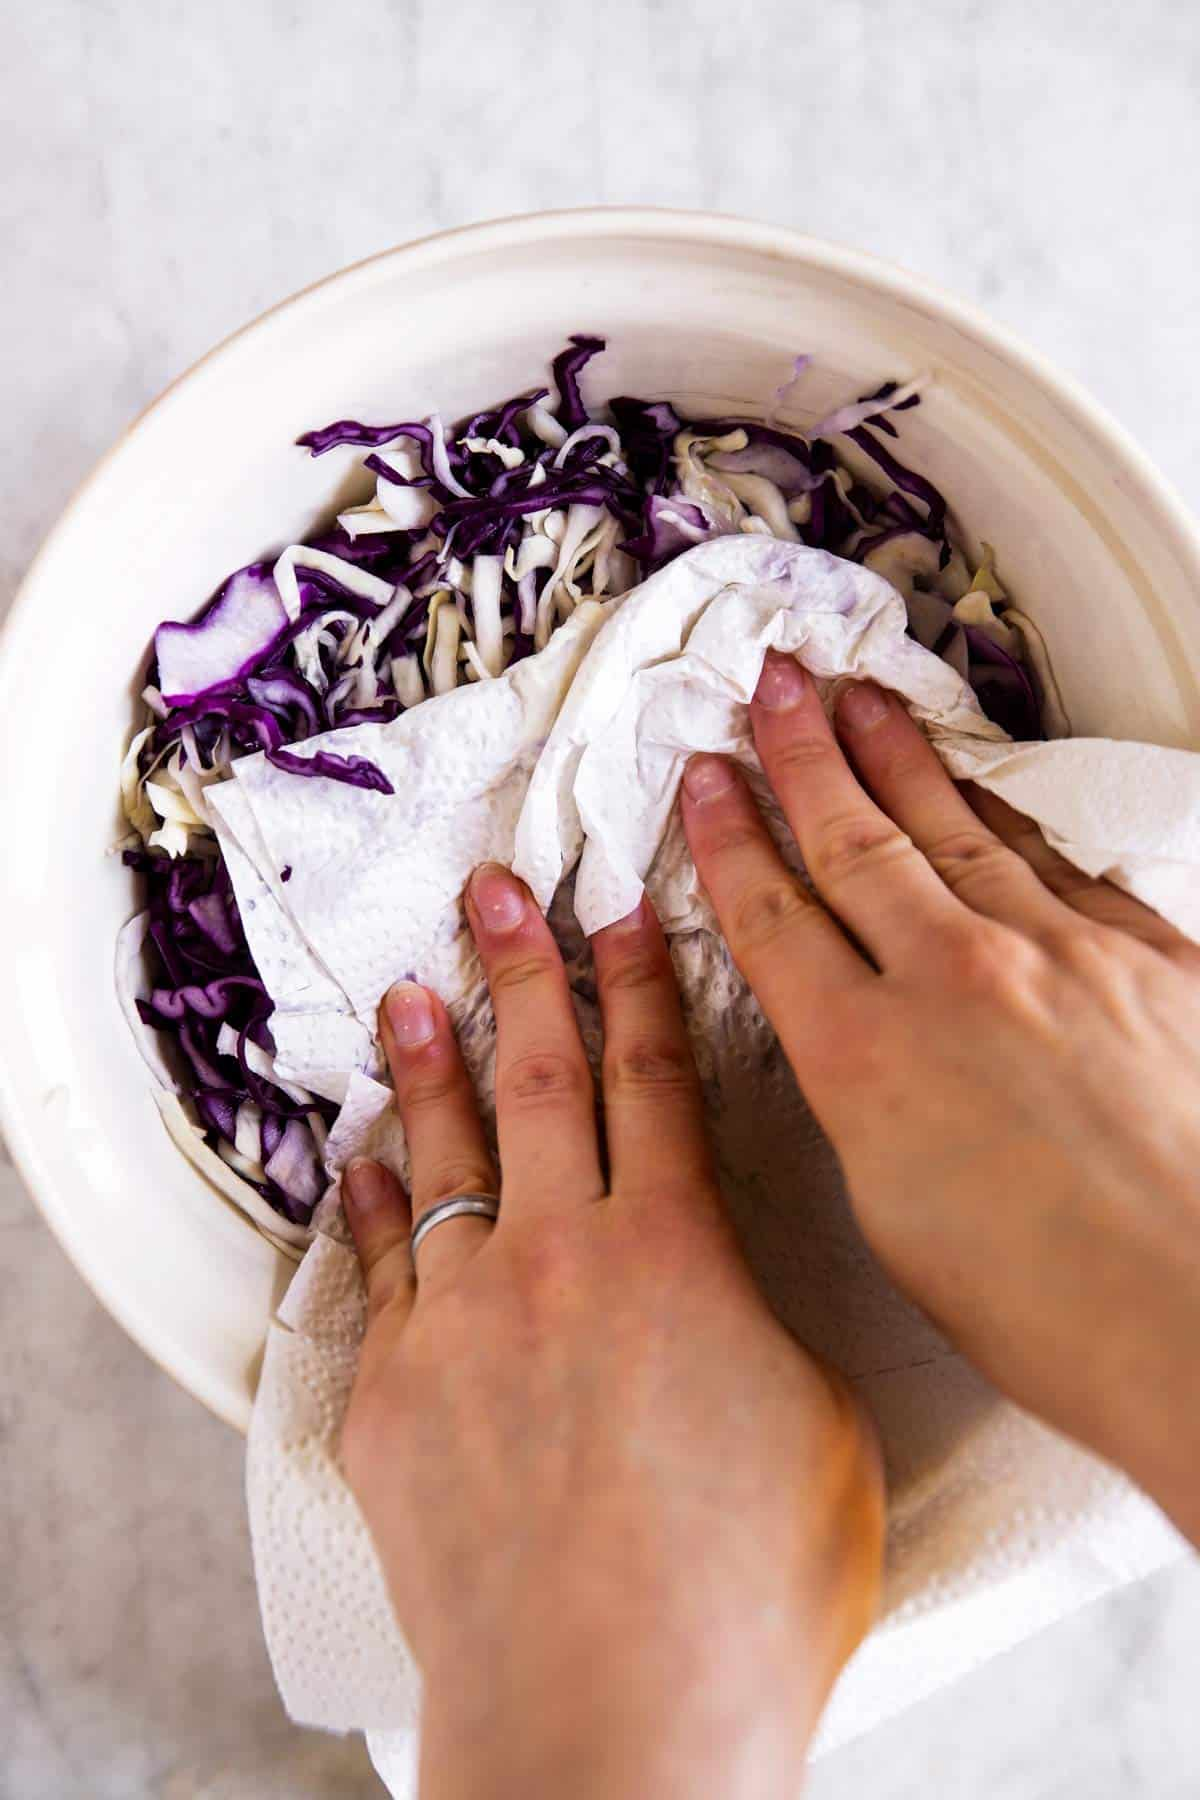 female hands patting dry cabbage in large mixing bowl